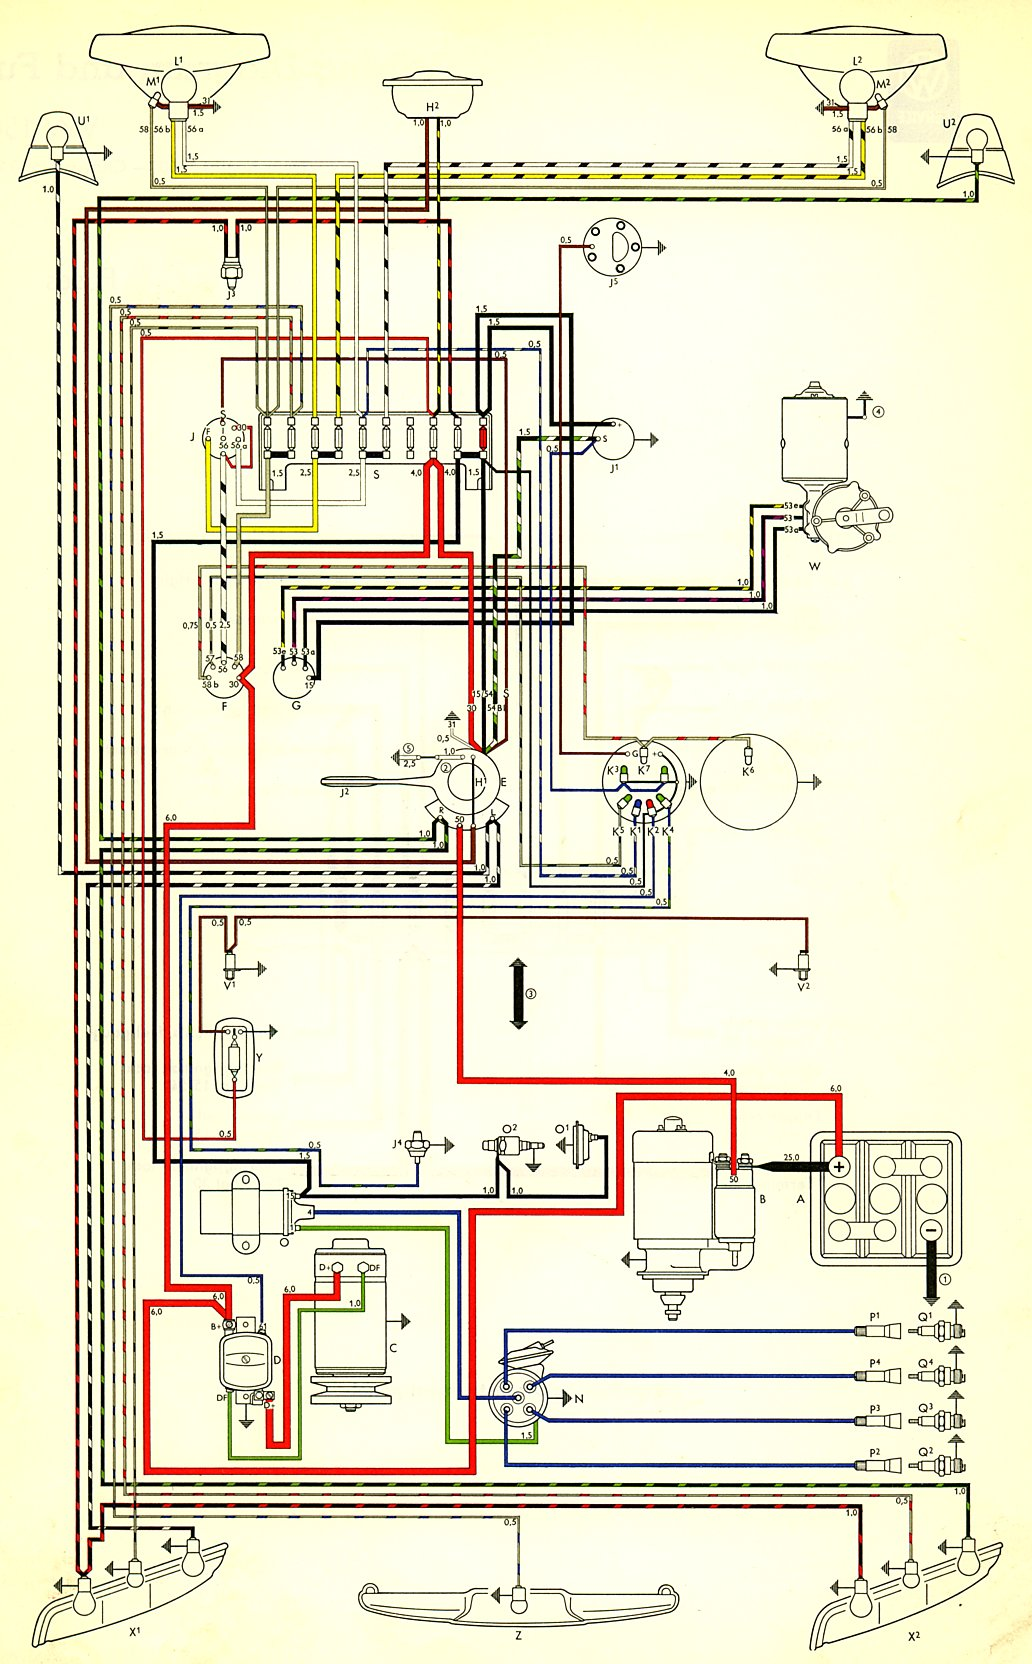 Viper 4105v Wiring Diagrams Model Schematics 560xv Diagram 26 Images 99 F250